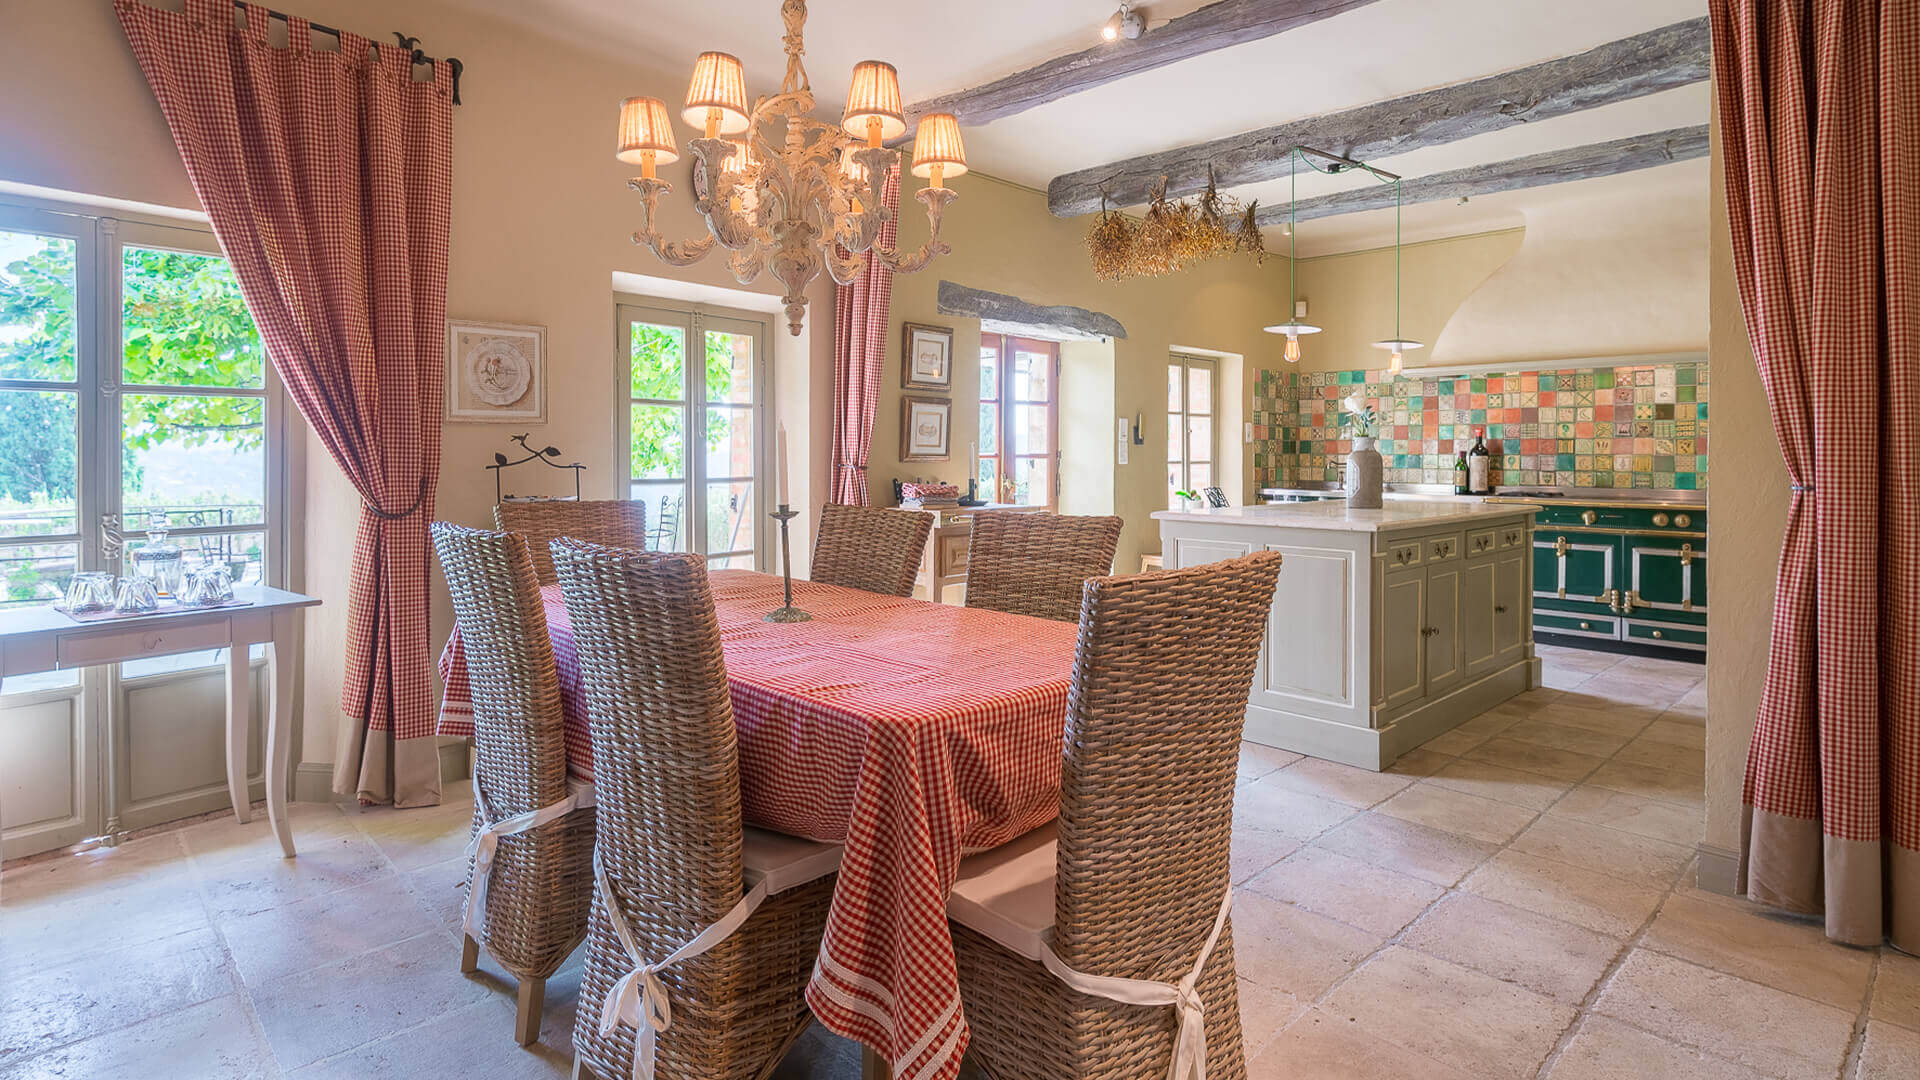 Bastide Provencale kitchen and dining area